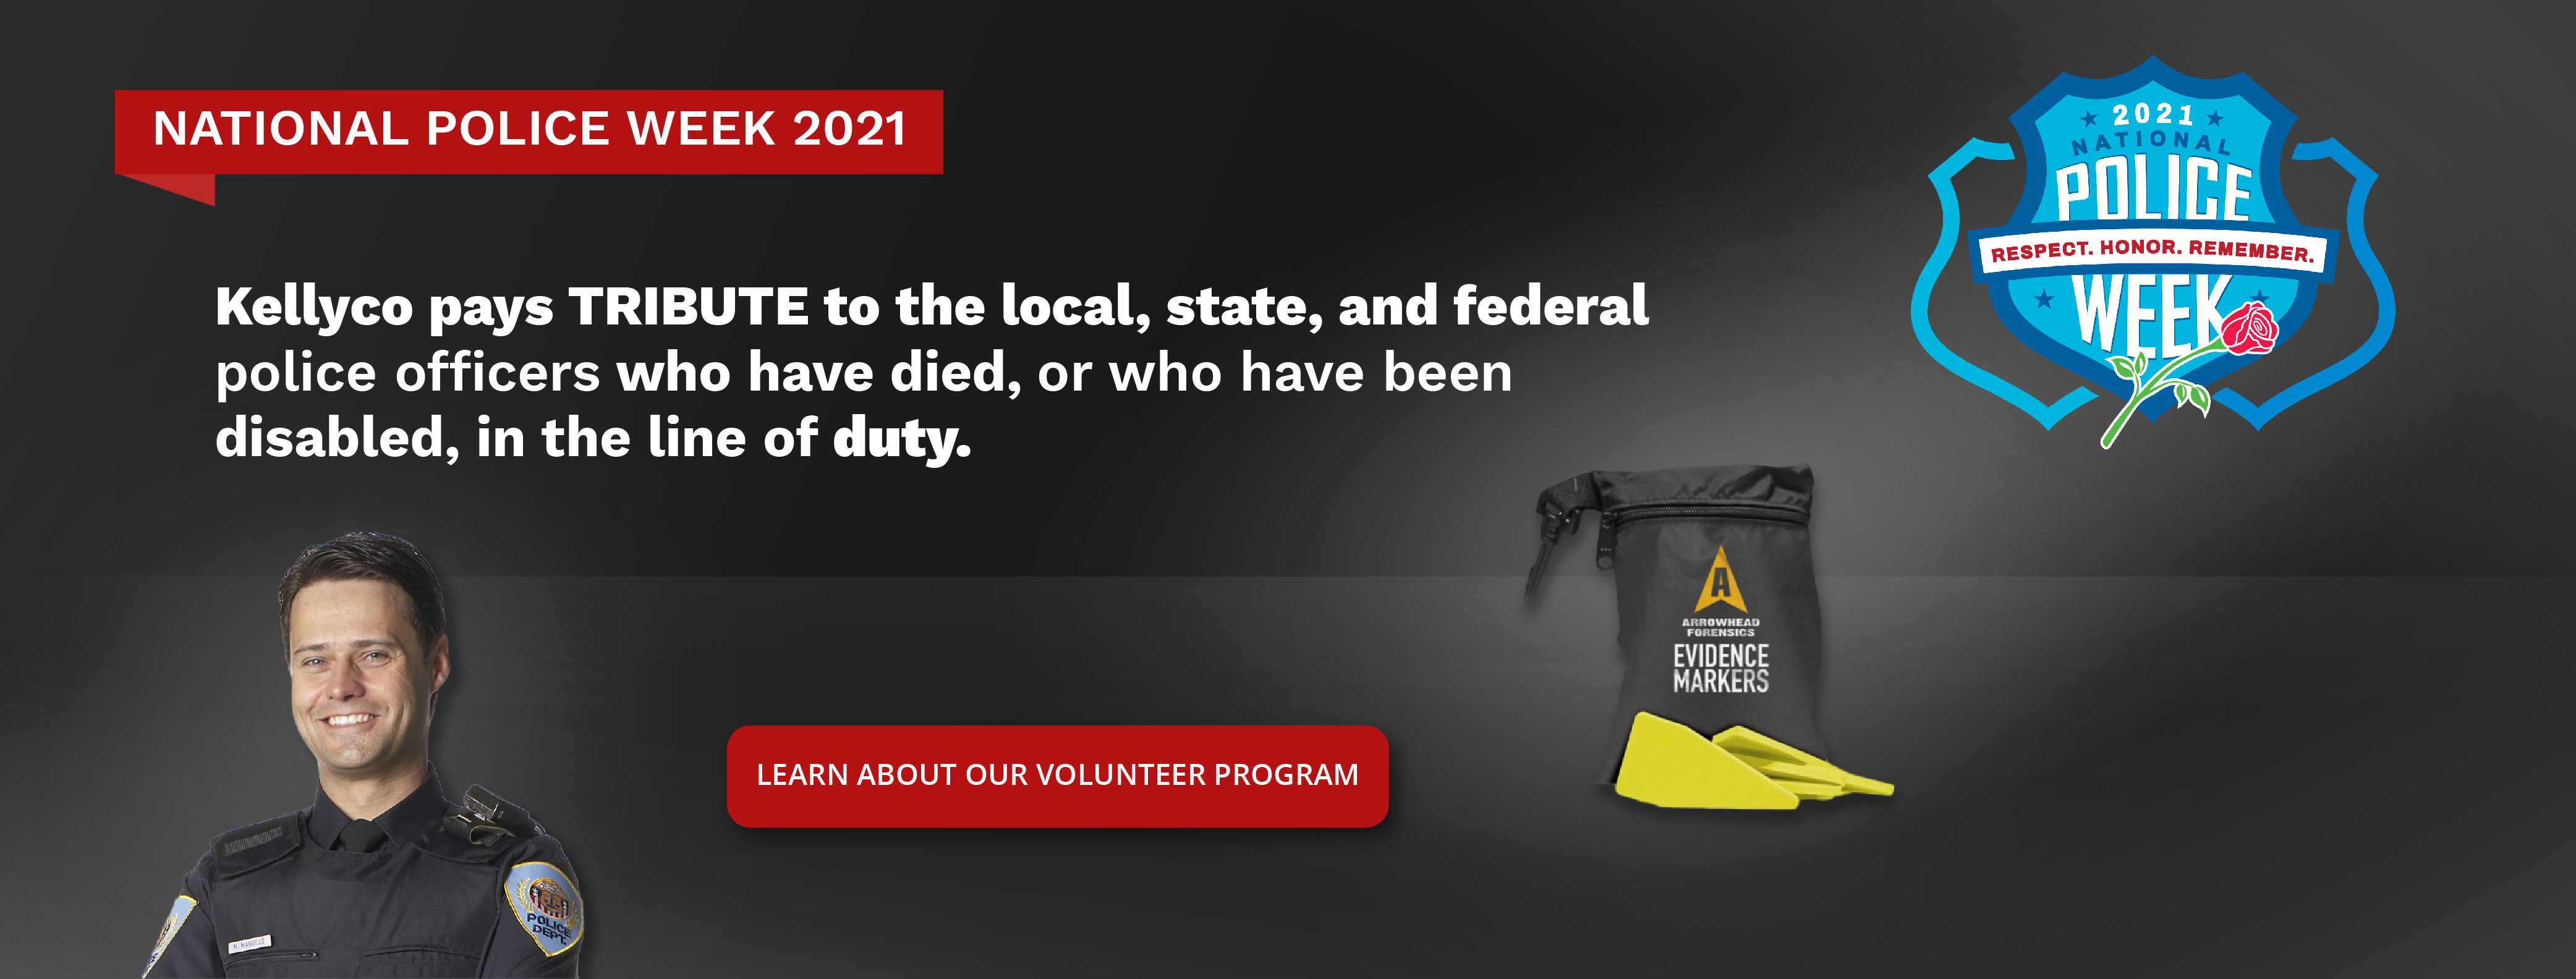 National Police Week 2021 in Red Box above White Text that Reads Kellyco Pays Tribute to the Local, State, and Federal police officers who have died or who have been disabled in the line of duty with Red Button below Reading